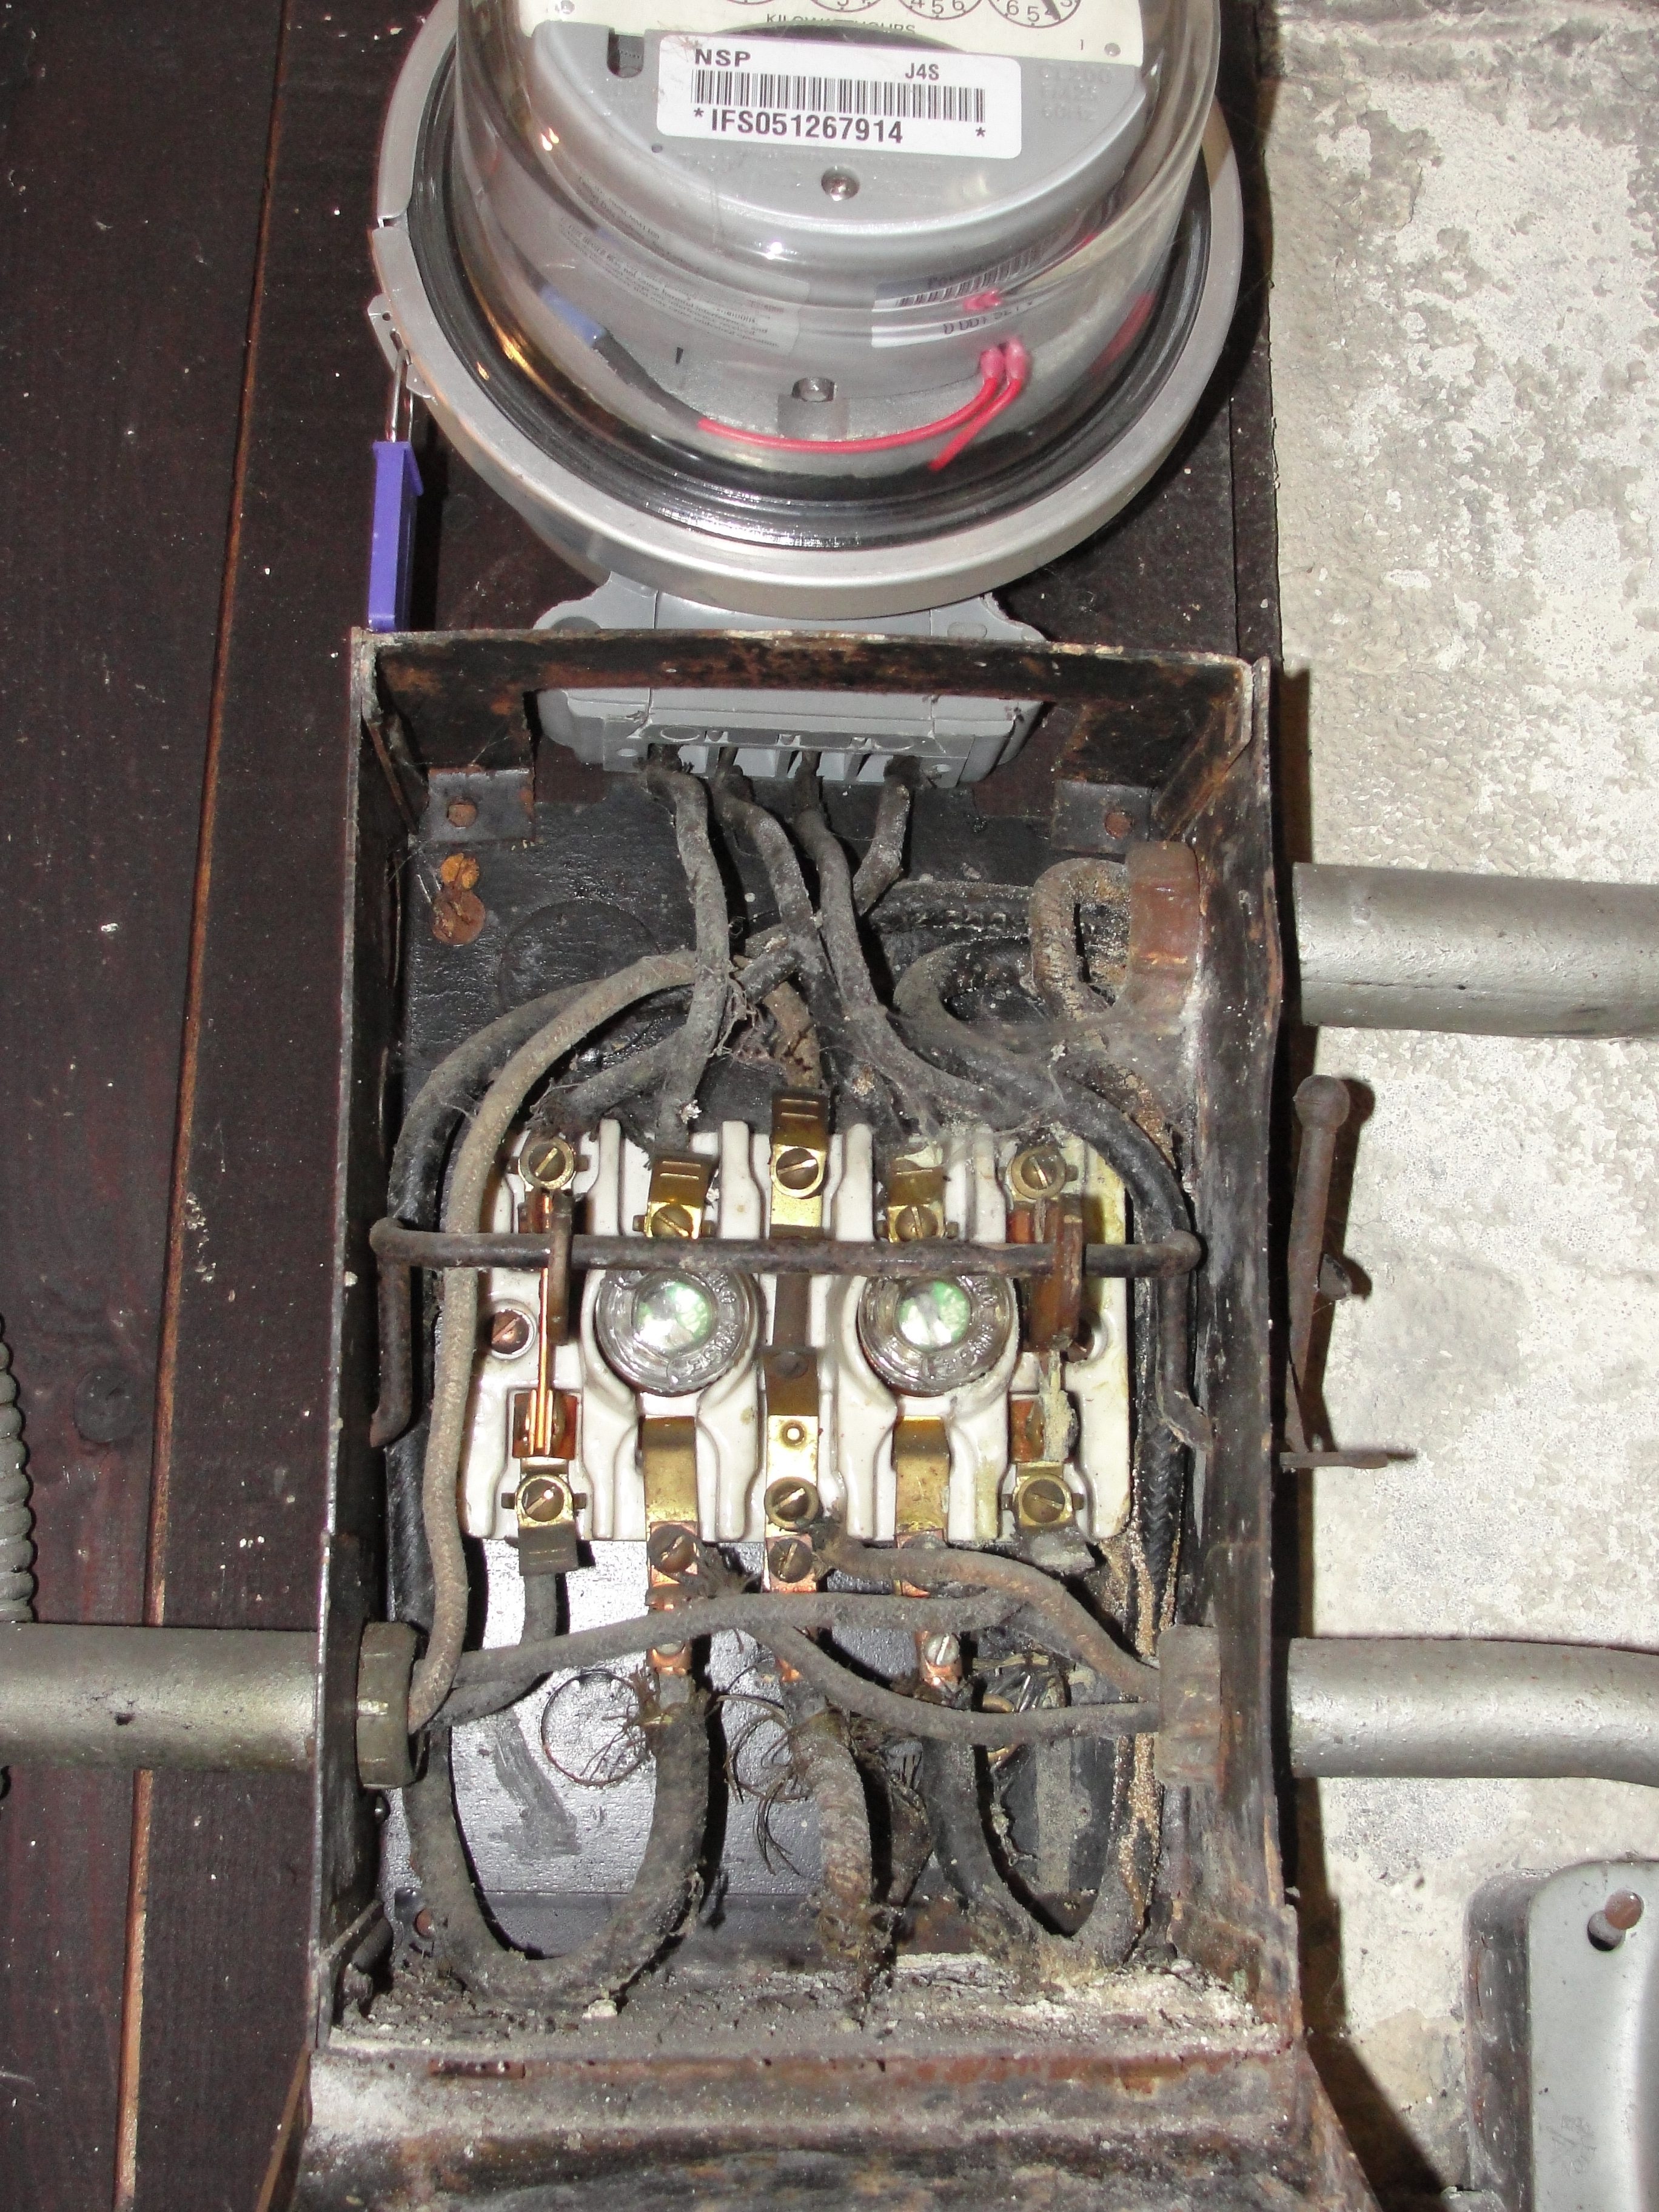 What good is a 100 amp electric service?